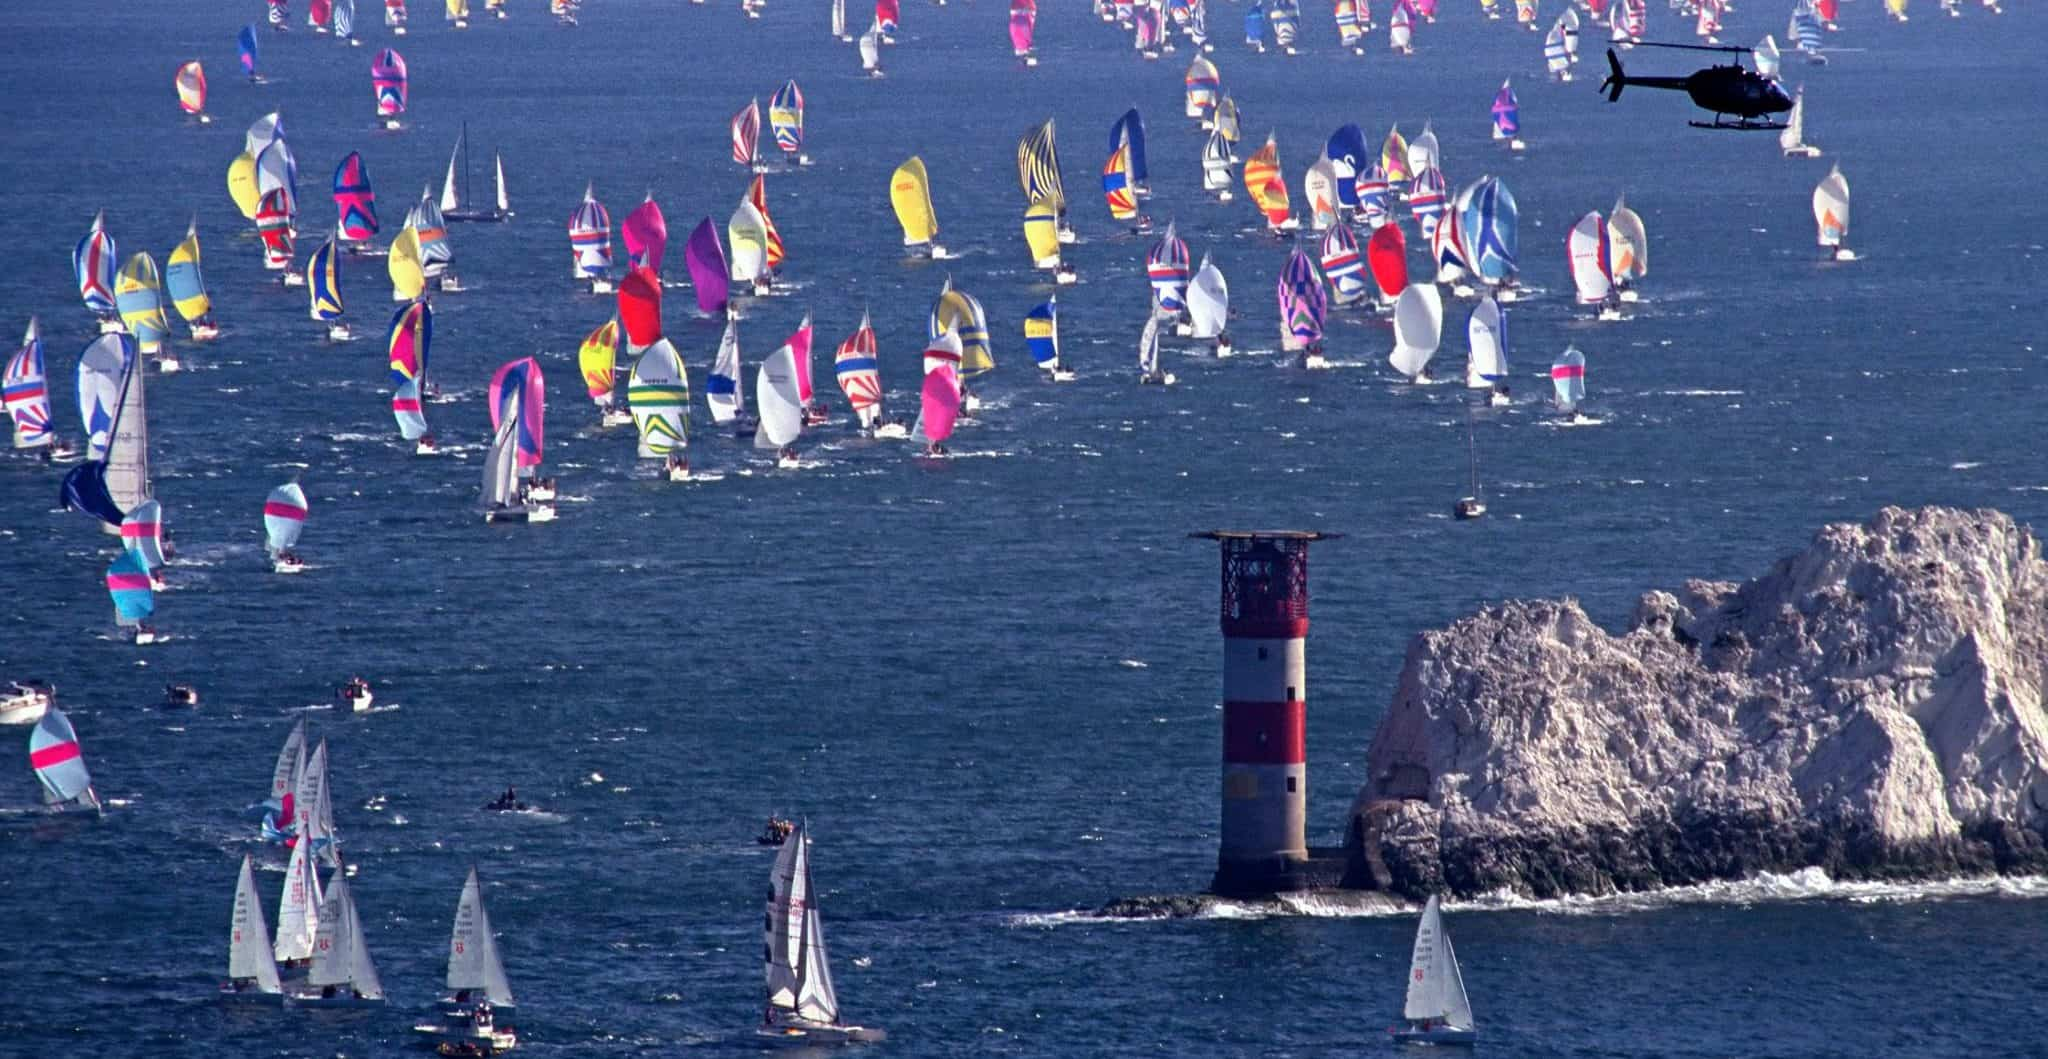 Round the Island Race Reschedules